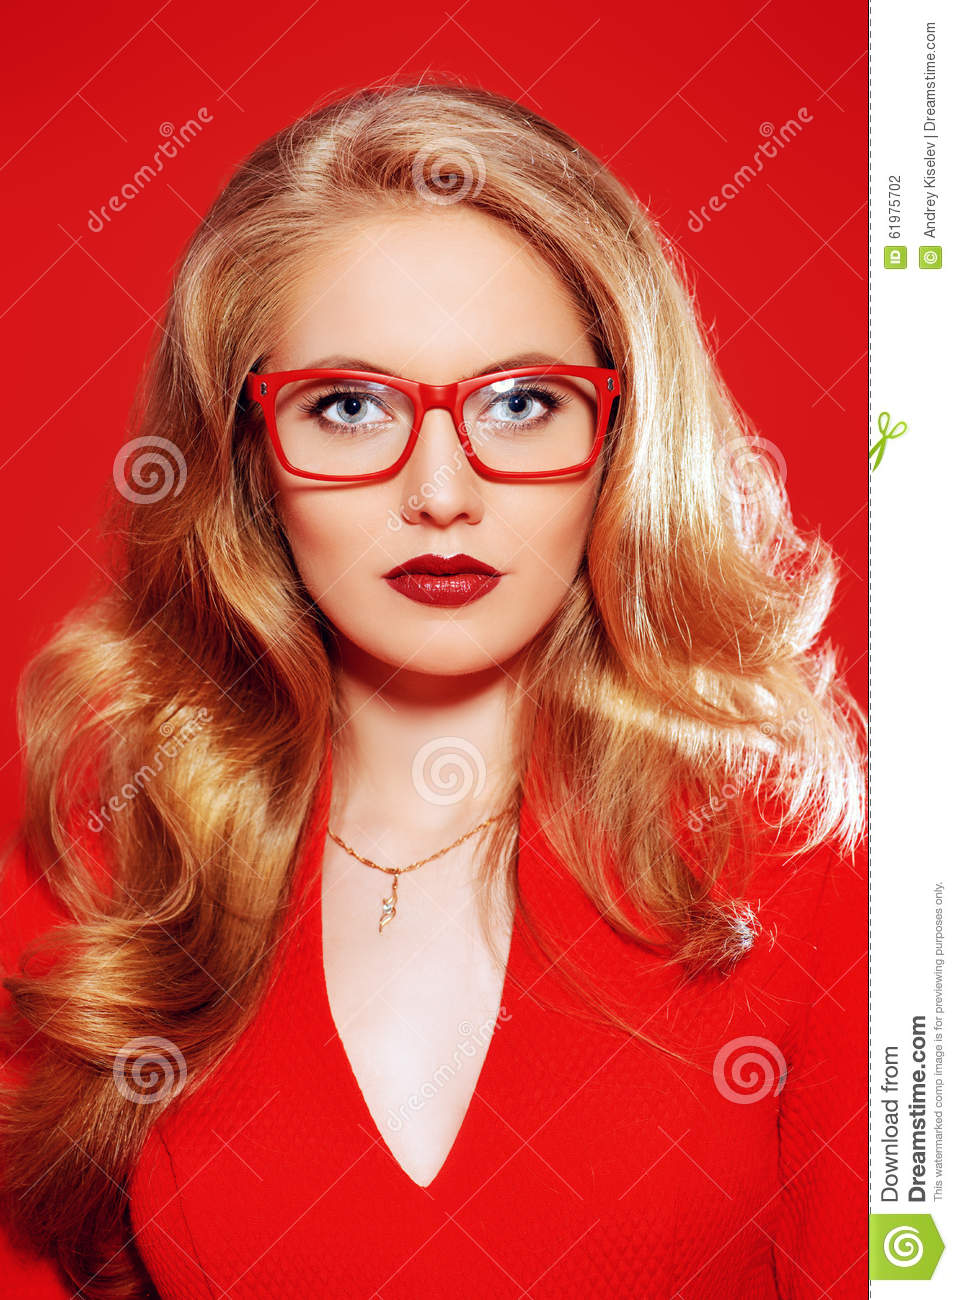 Eyewear Style Stock Photo Image Of Cosmetics Blonde 61975702